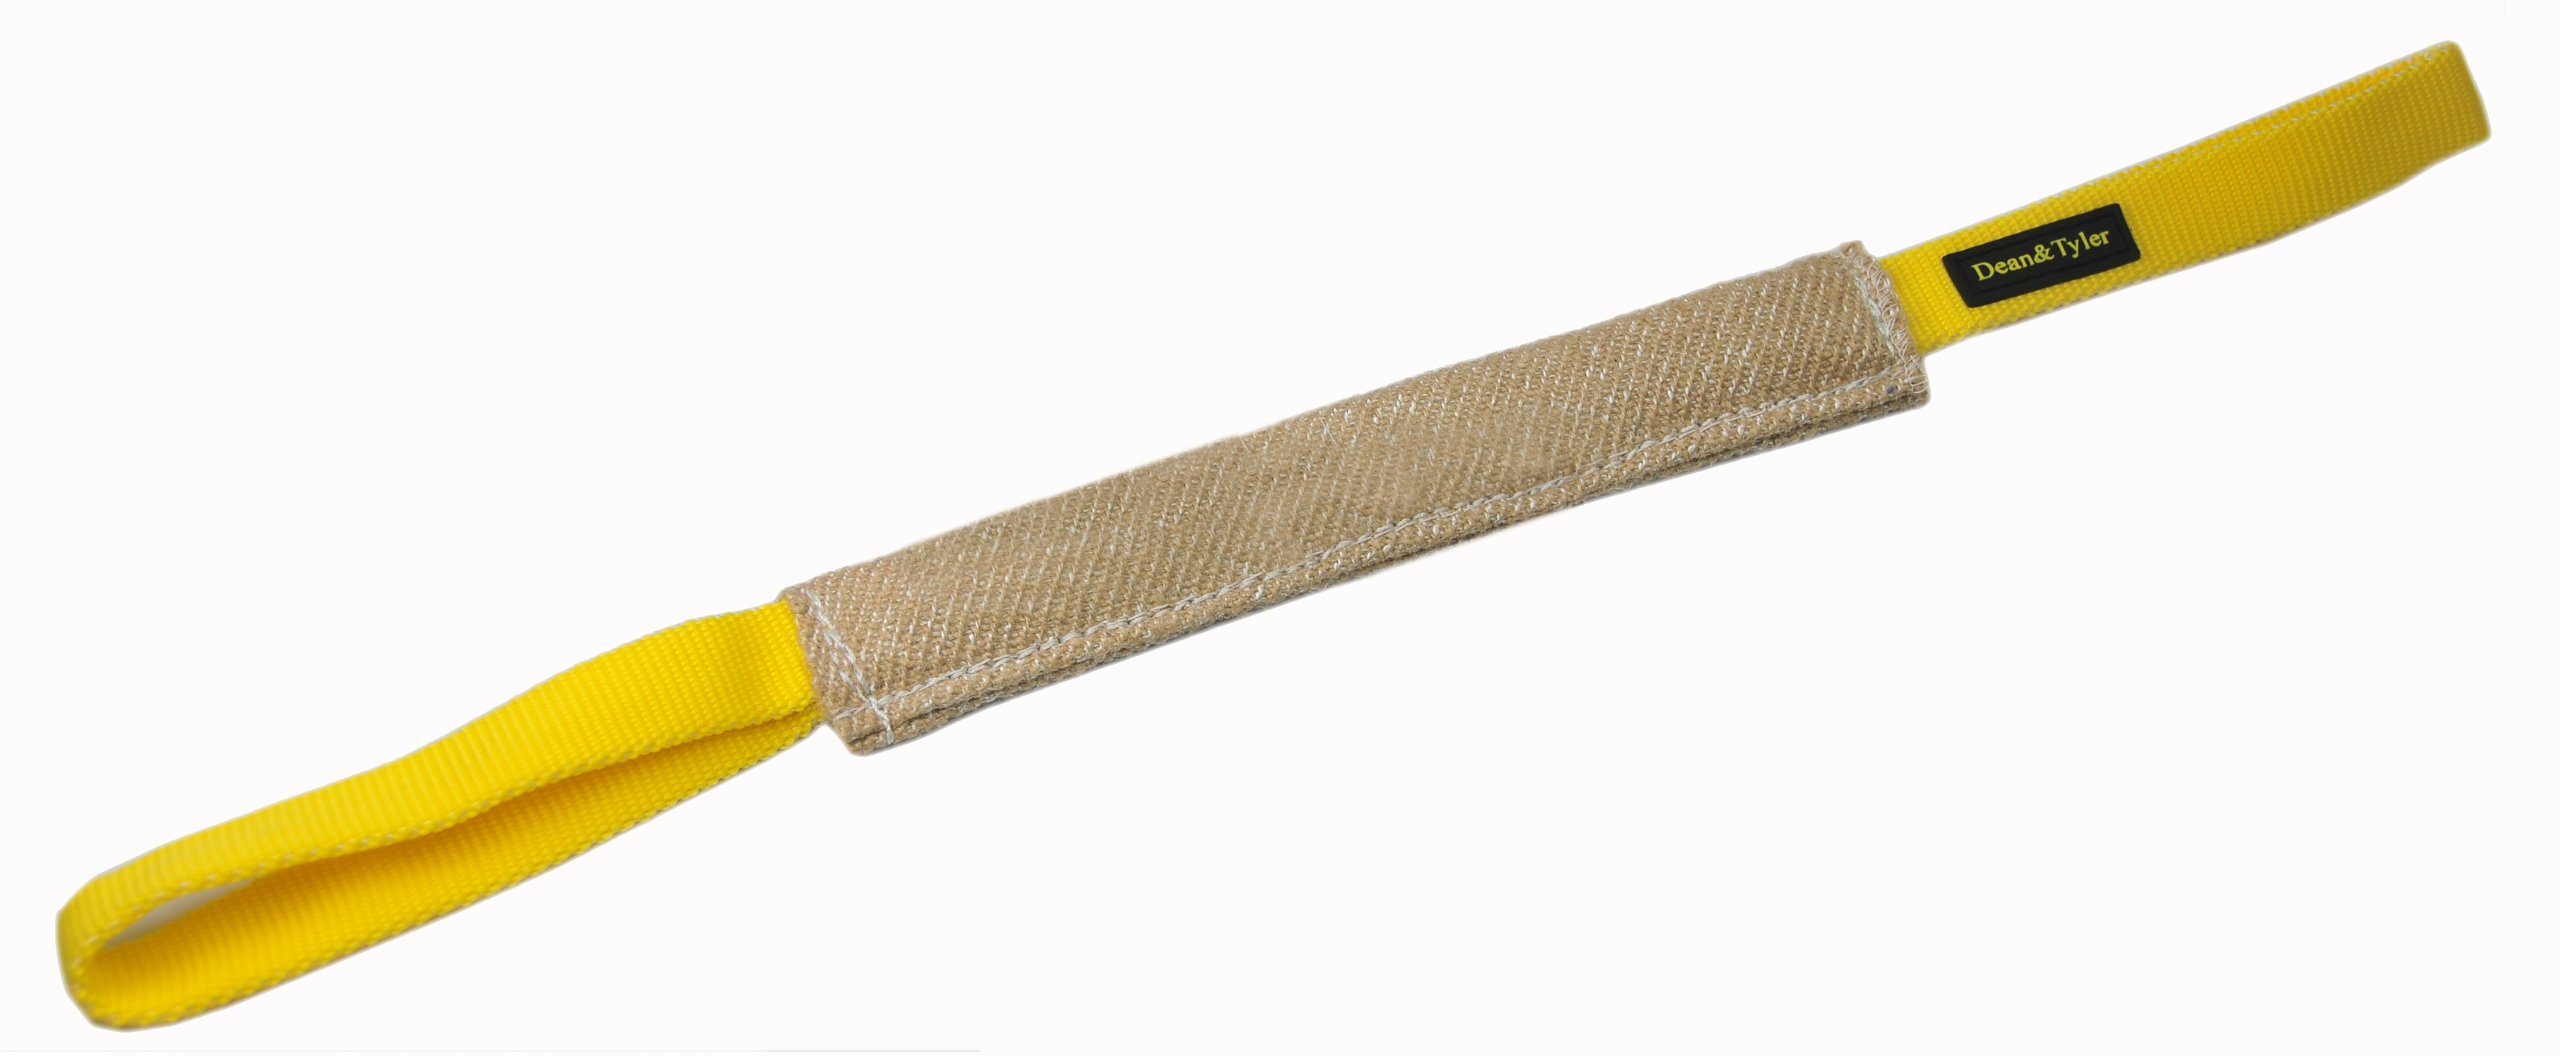 Dean and Tyler Small Pocket Bite Tug - Jute - Size: 8-Inch by 2-Inch by Dean & Tyler